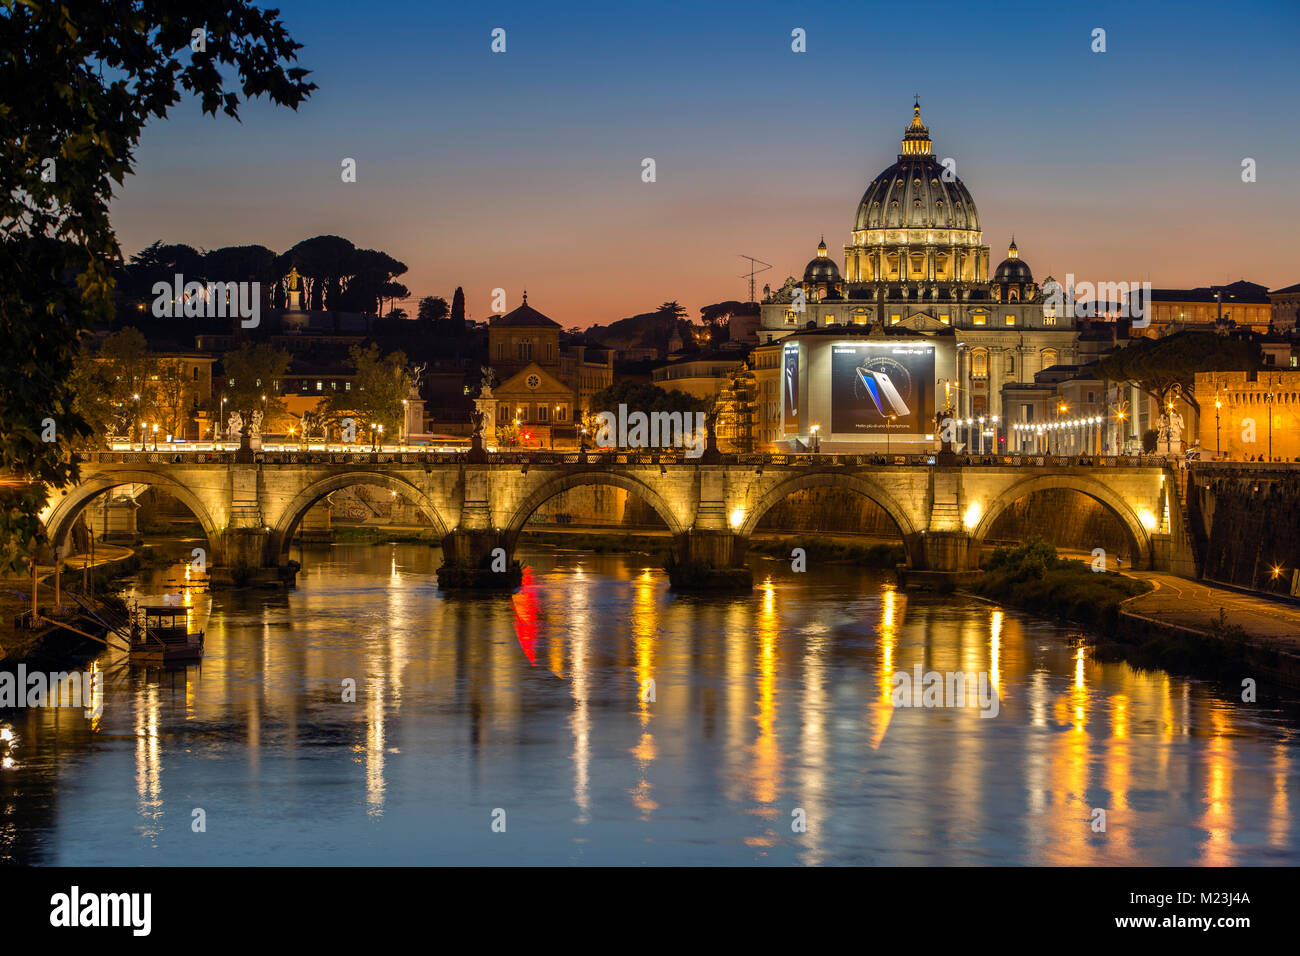 Vatican City and Saint Angelo Bridge at dusk, Italy - Stock Image